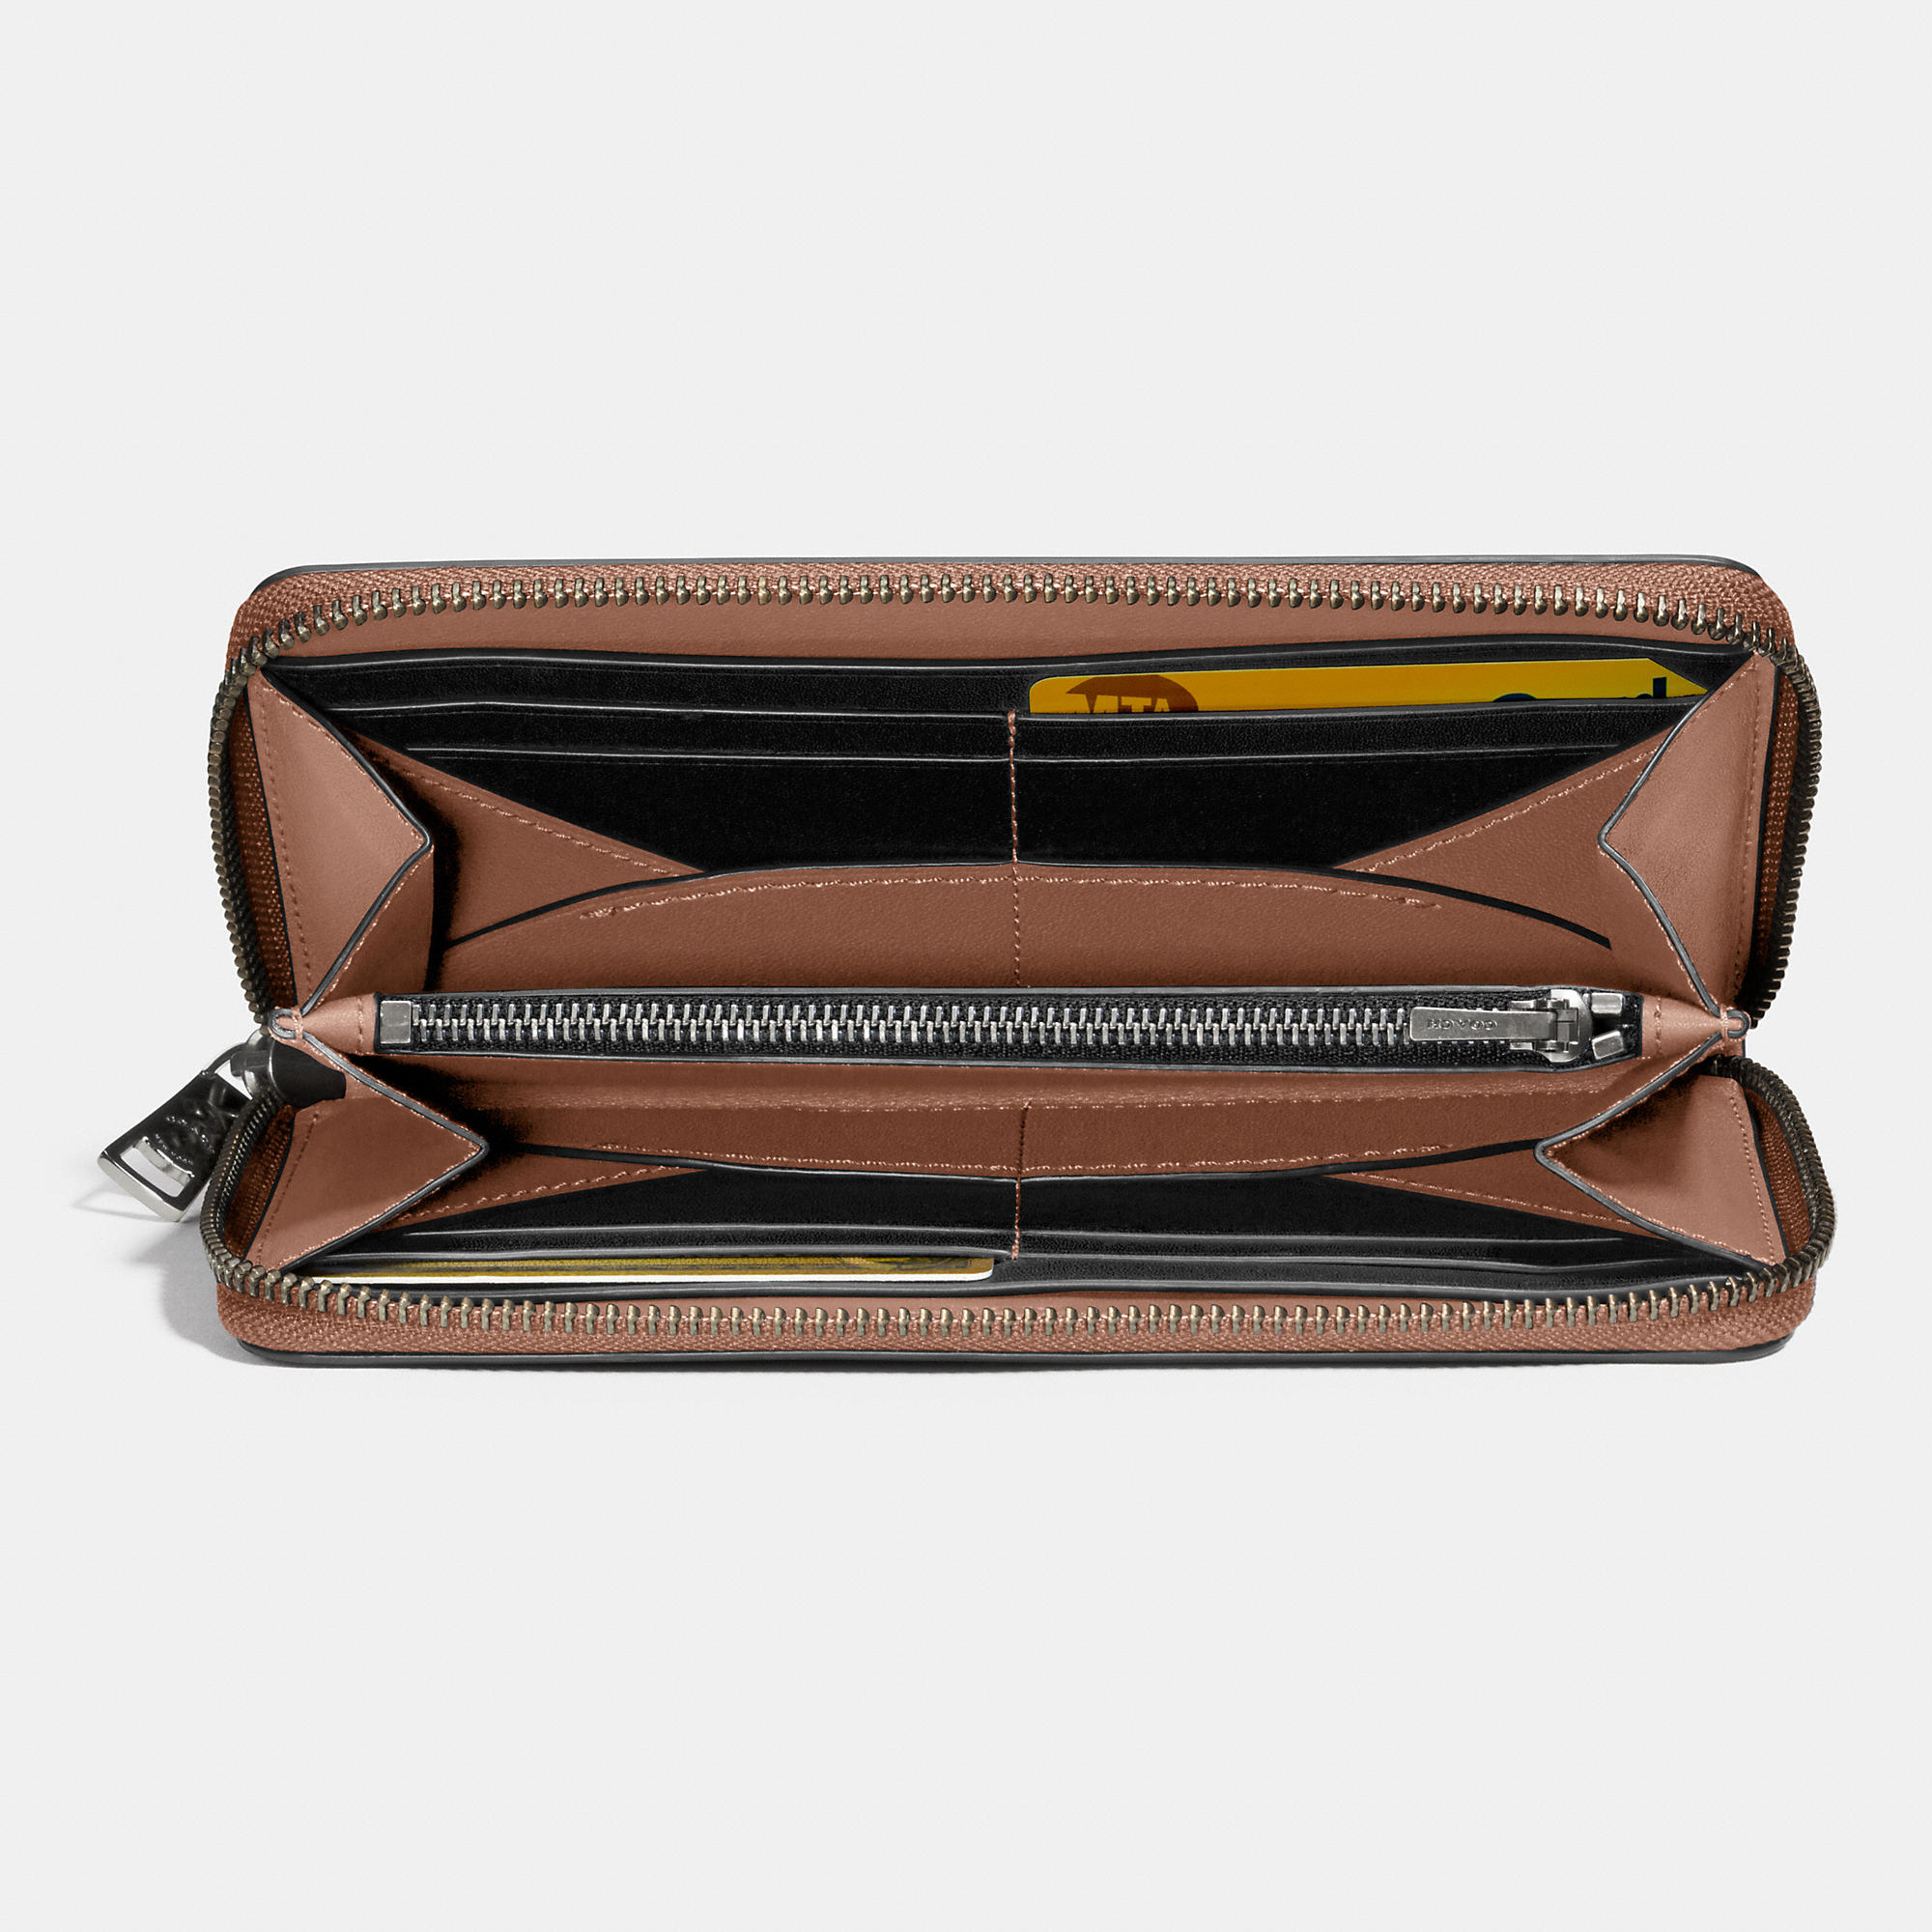 ad2ade37ec18 ... closeout lyst coach 1941 accordion zip wallet in glovetanned leather in  brown d0c35 24ea3